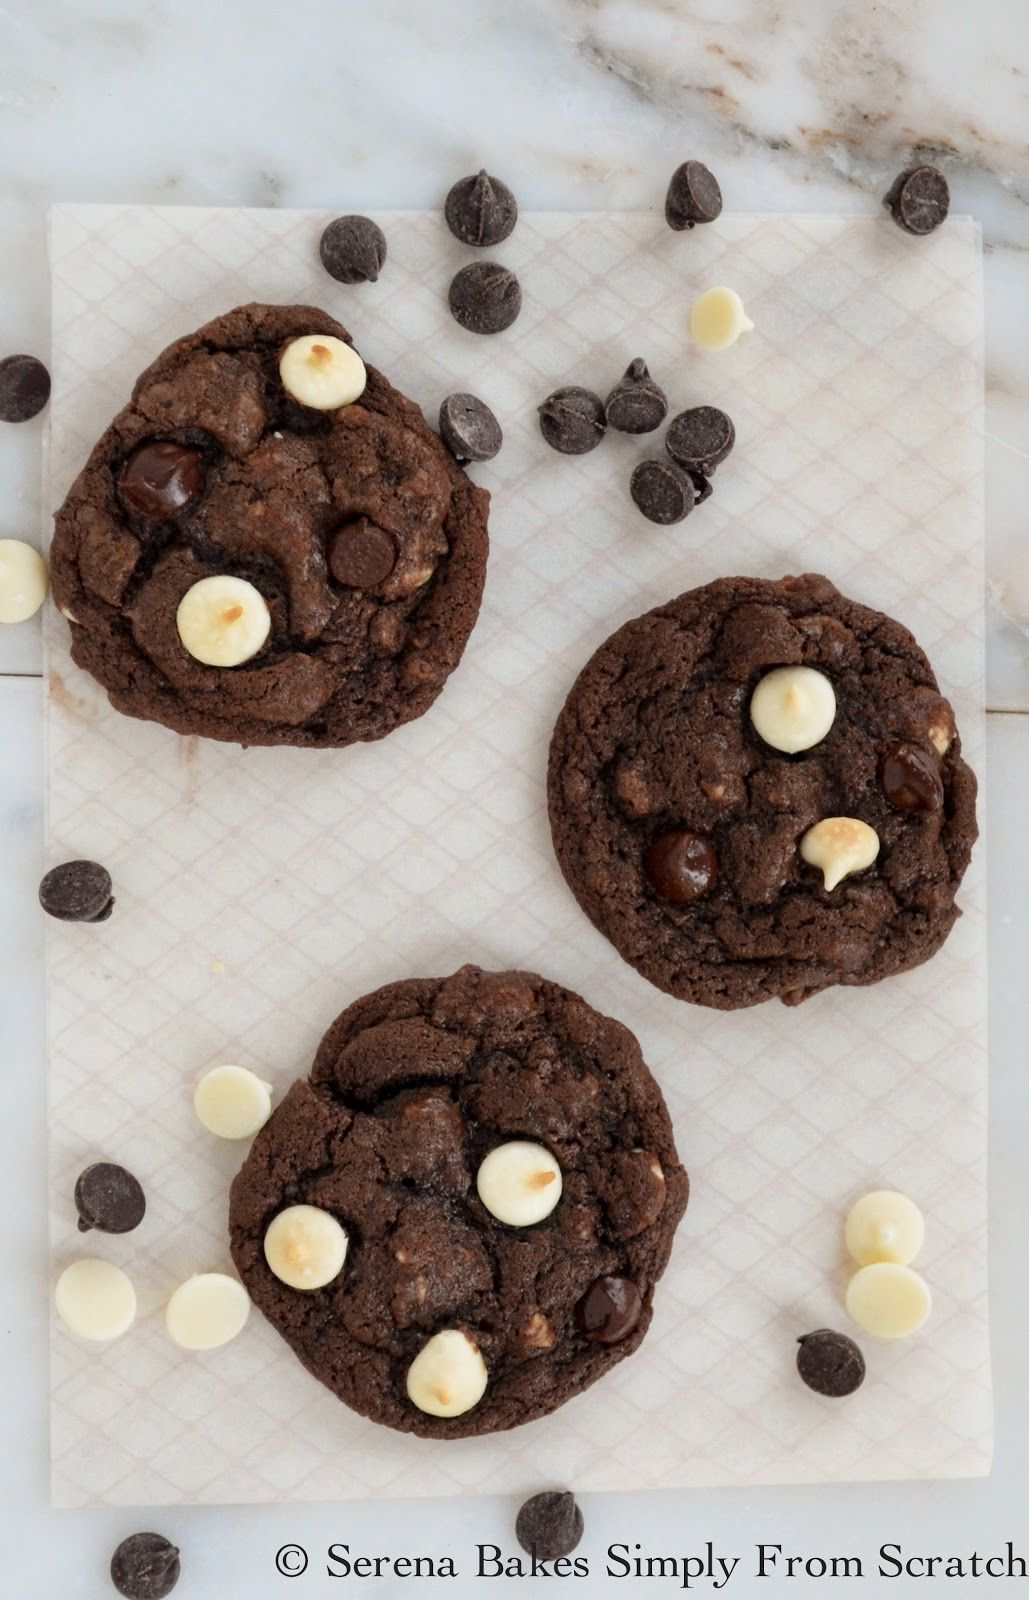 Serena Bakes Simply From Scratch: Double Chocolate Chip Cookies